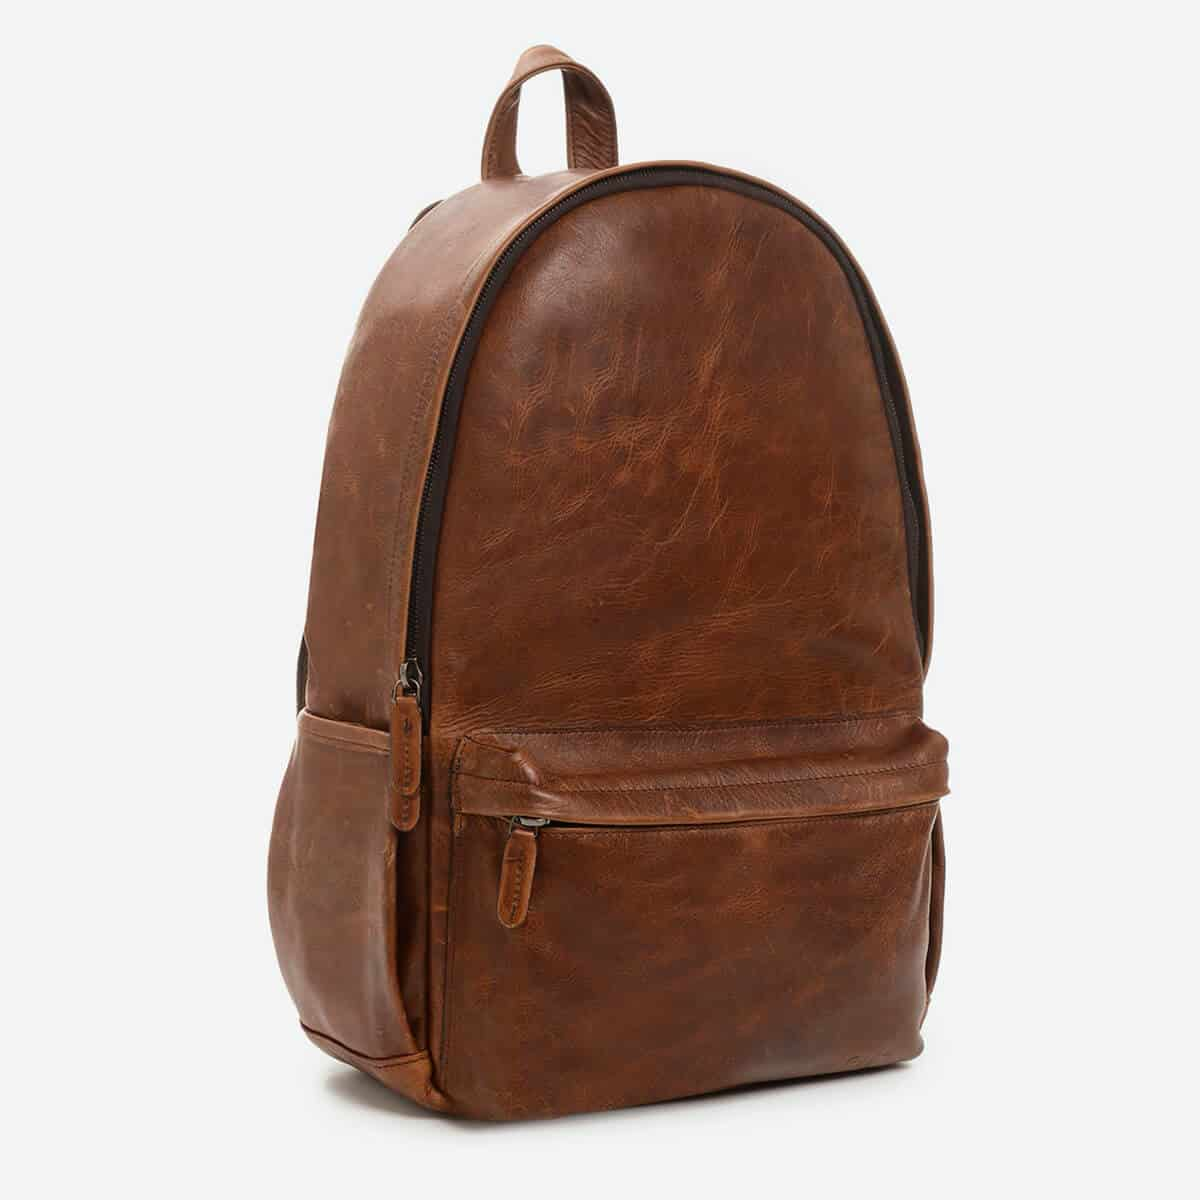 ONA Bags - The Clifton